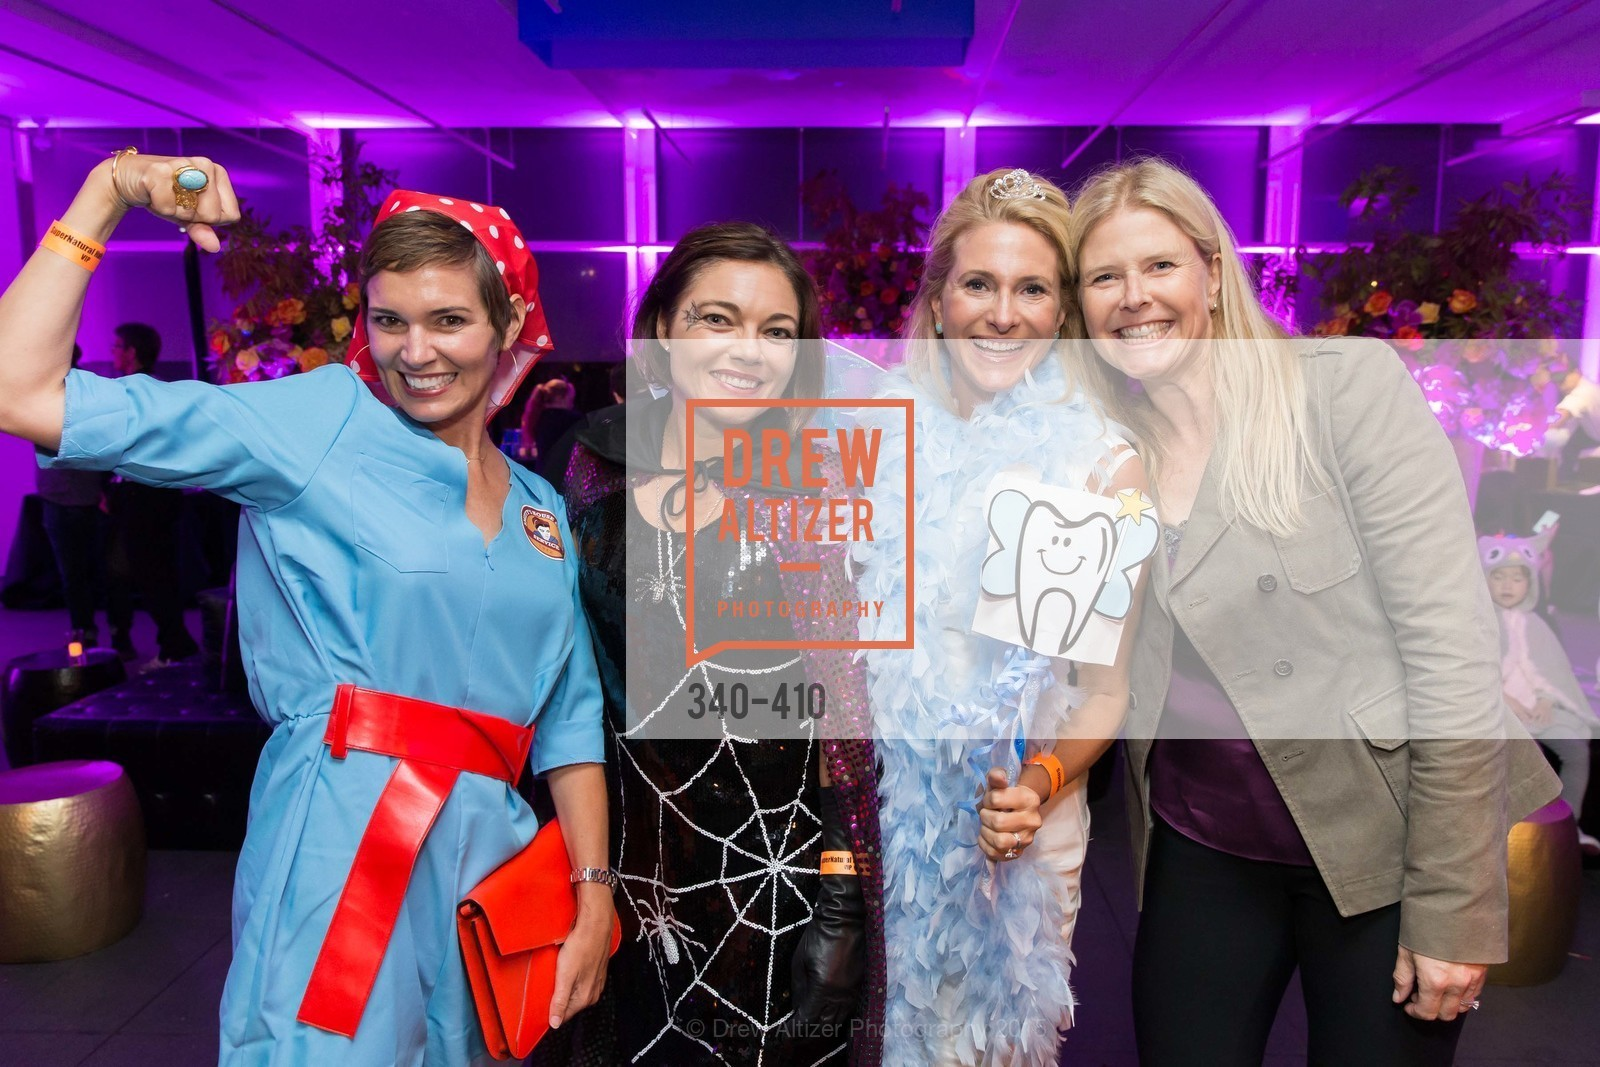 Susan Moody Prieto, Marine Strage, Amanda Stephens, Virginia Tusher, California Academy of Sciences Presents SuperNatural Halloween 2015, California Academy of Science. 55 Music Concourse Dr, October 23rd, 2015,Drew Altizer, Drew Altizer Photography, full-service agency, private events, San Francisco photographer, photographer california